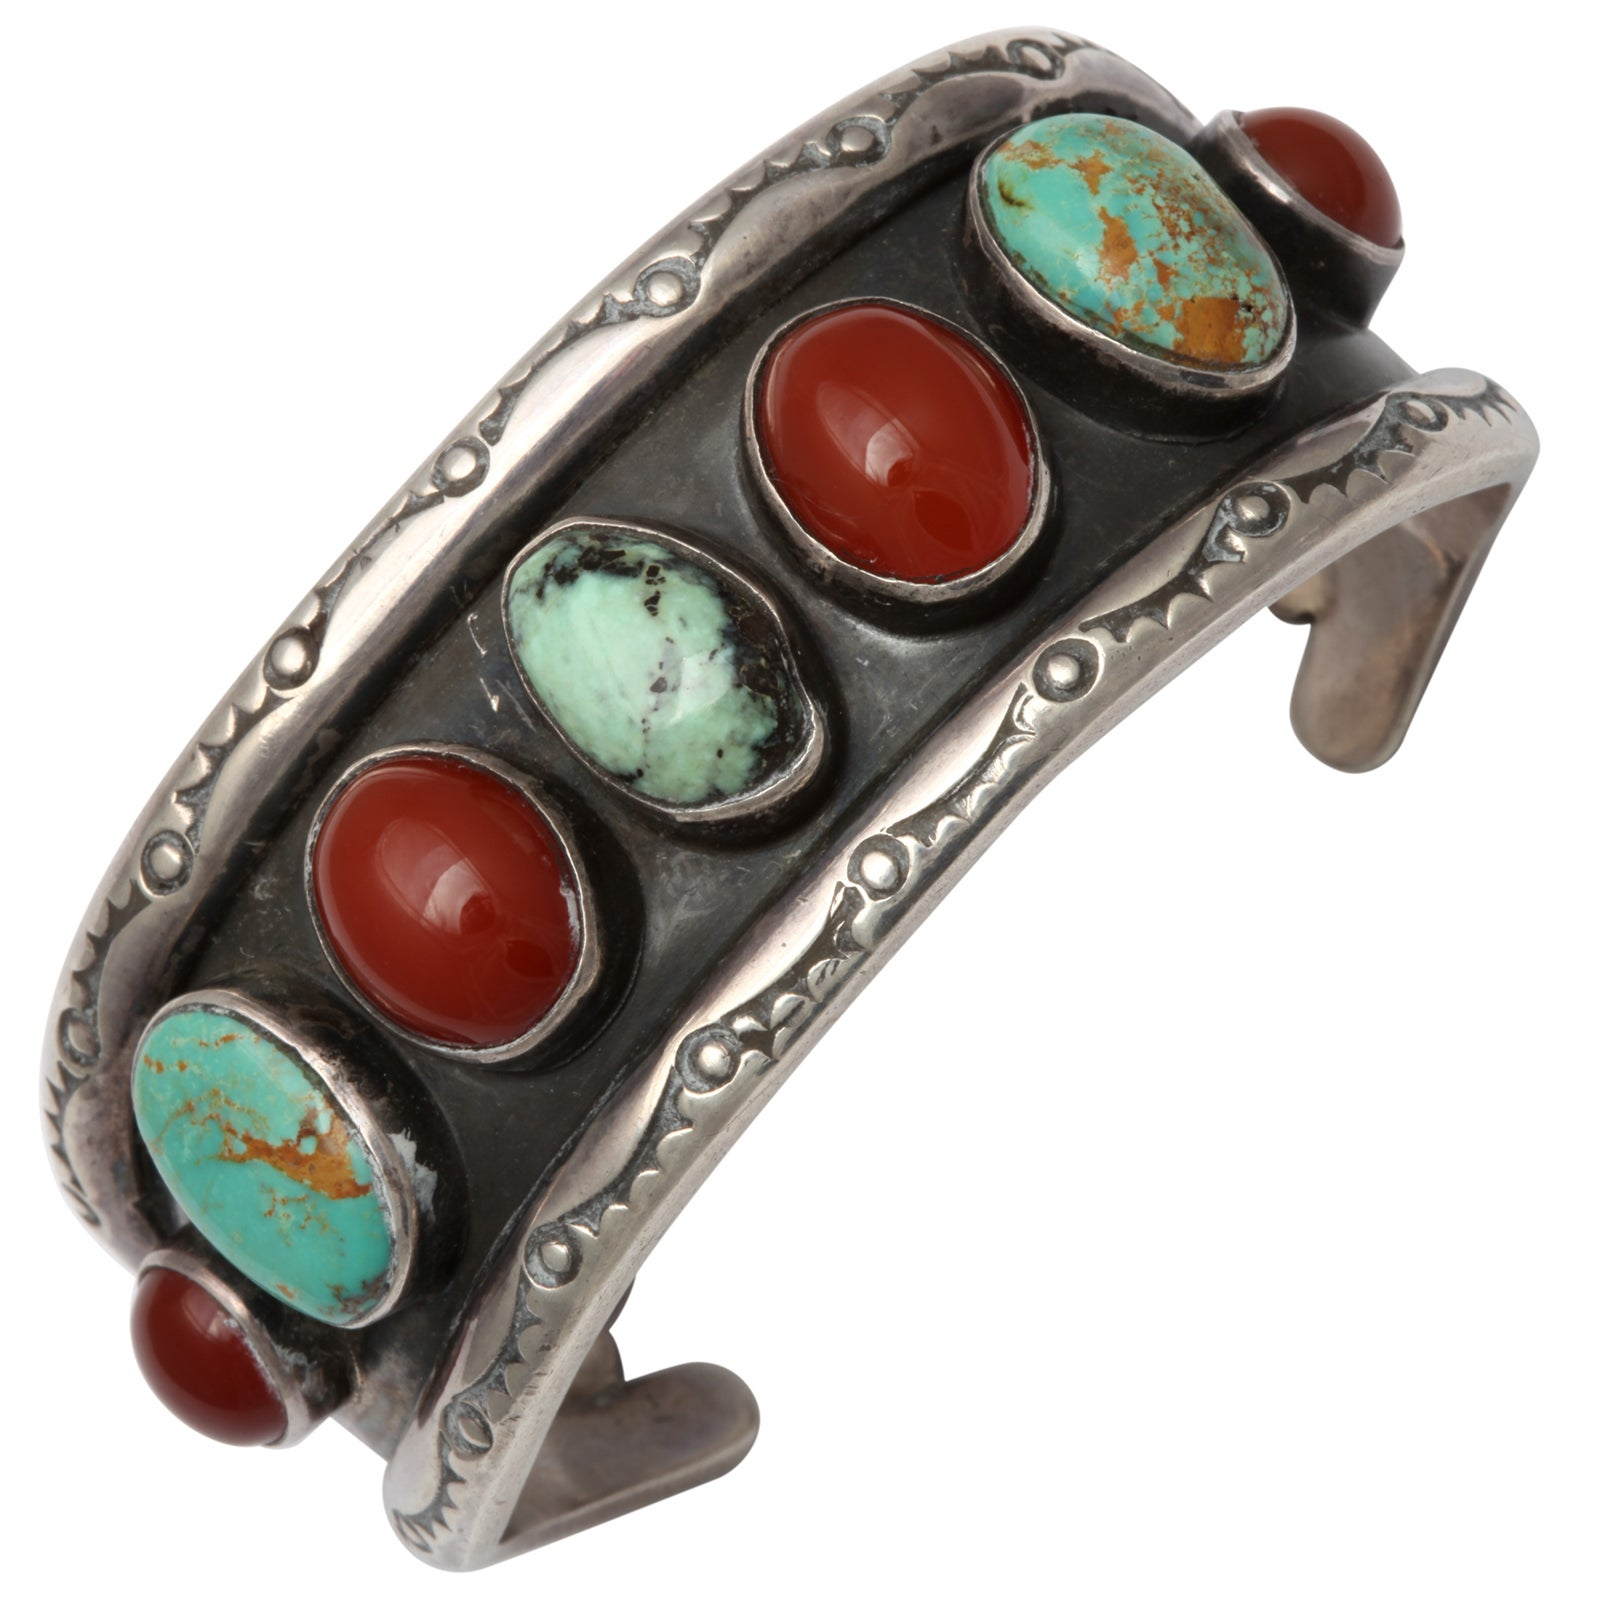 Old Navajo Cuff of Matrix Turquoise and Carnelian 1